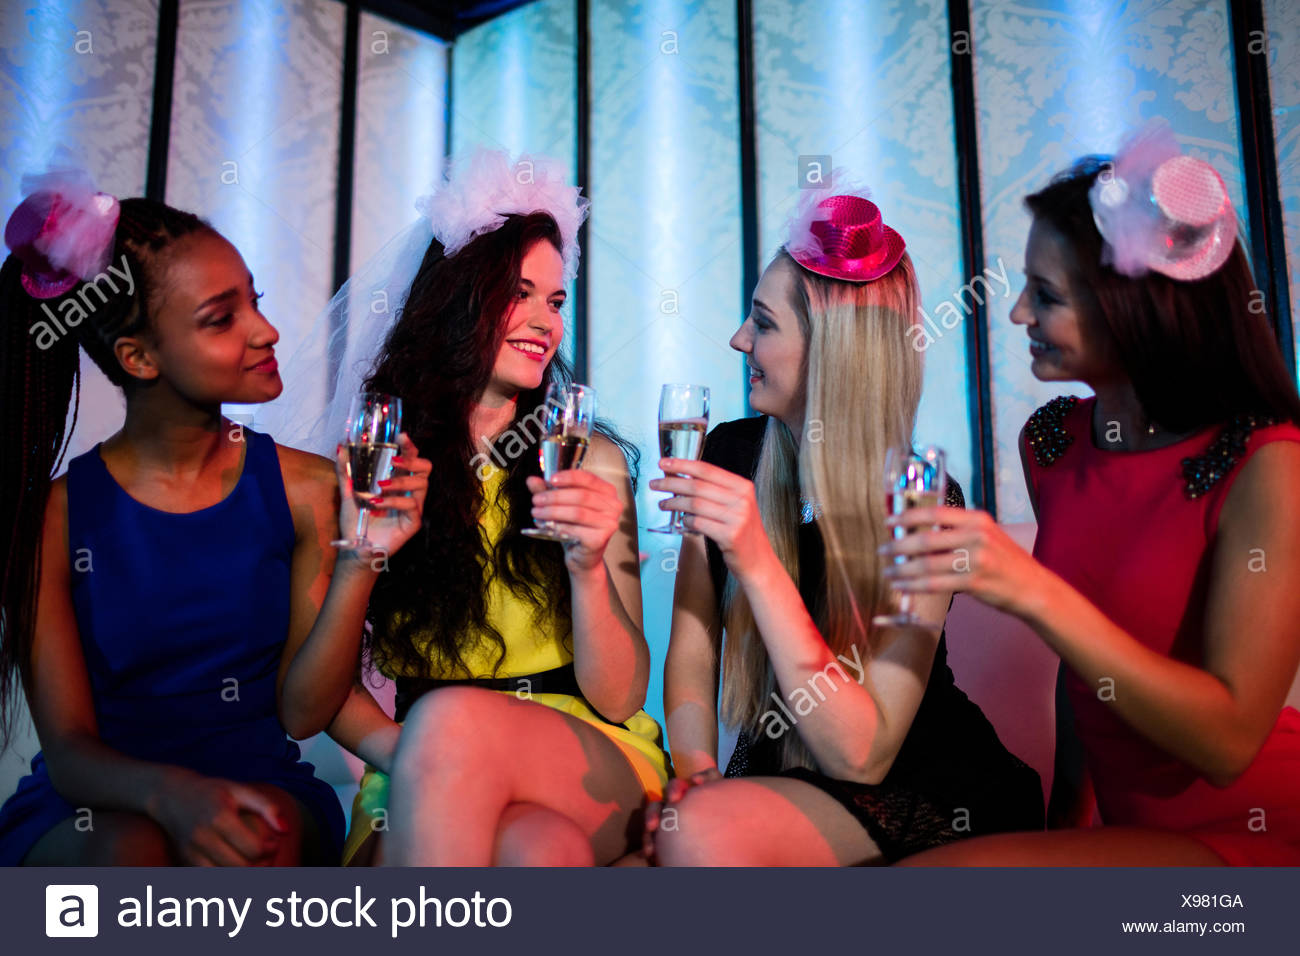 Group of smiling friend having glass of champagne - Stock Image